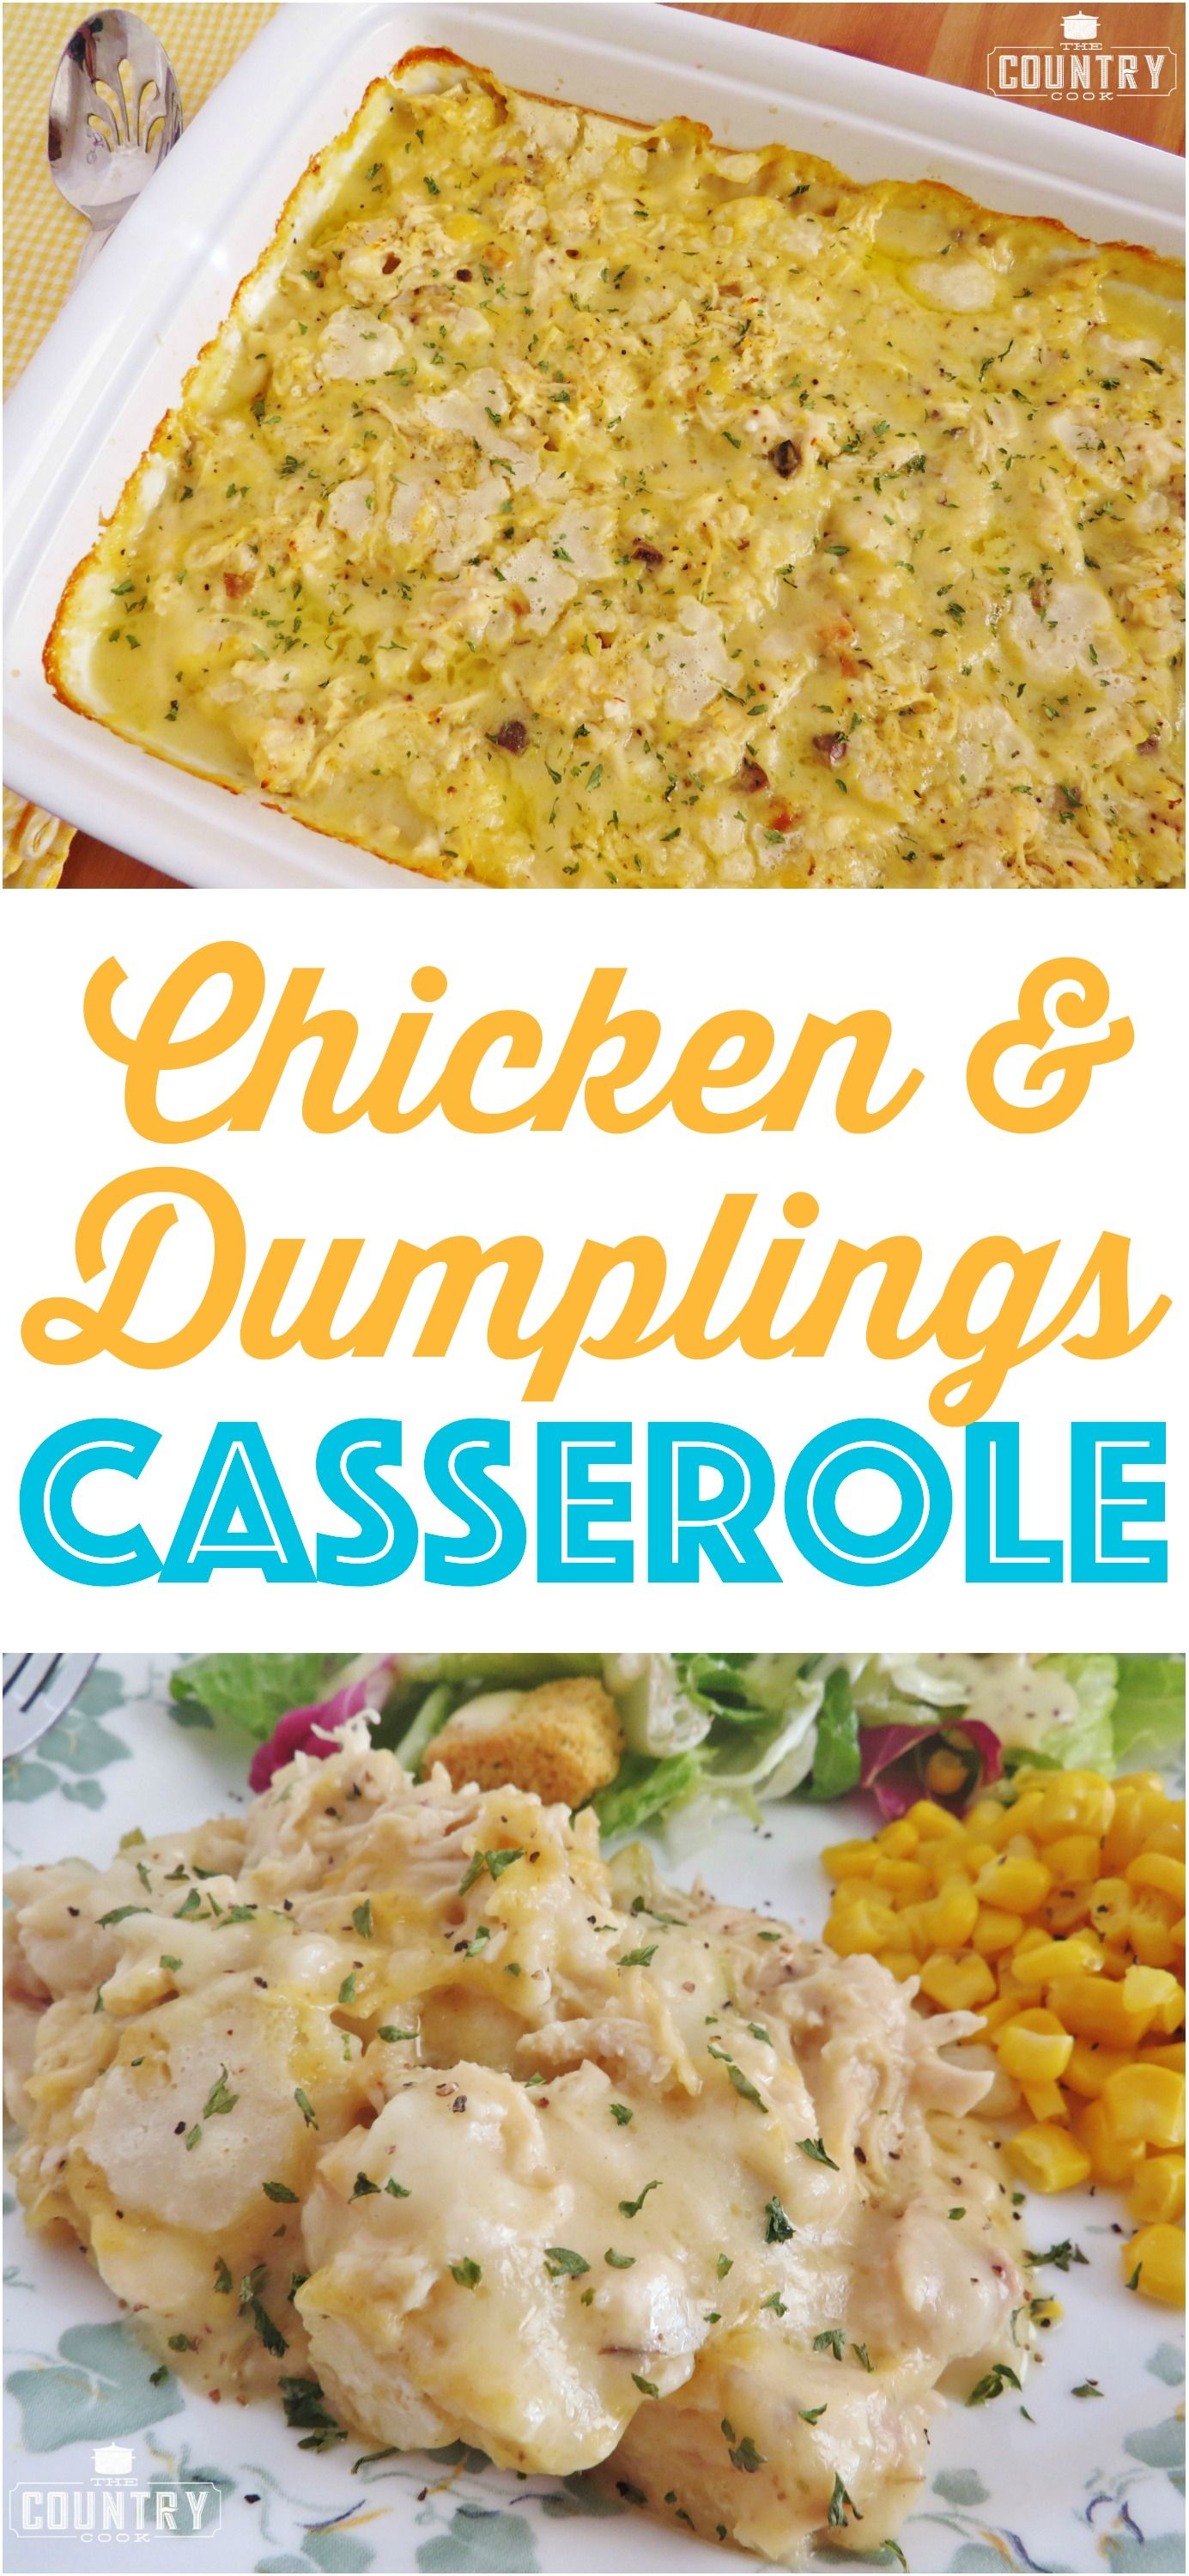 Chicken And Dumplings Casserole Recipe At The Country Cook So Easy And Yummy